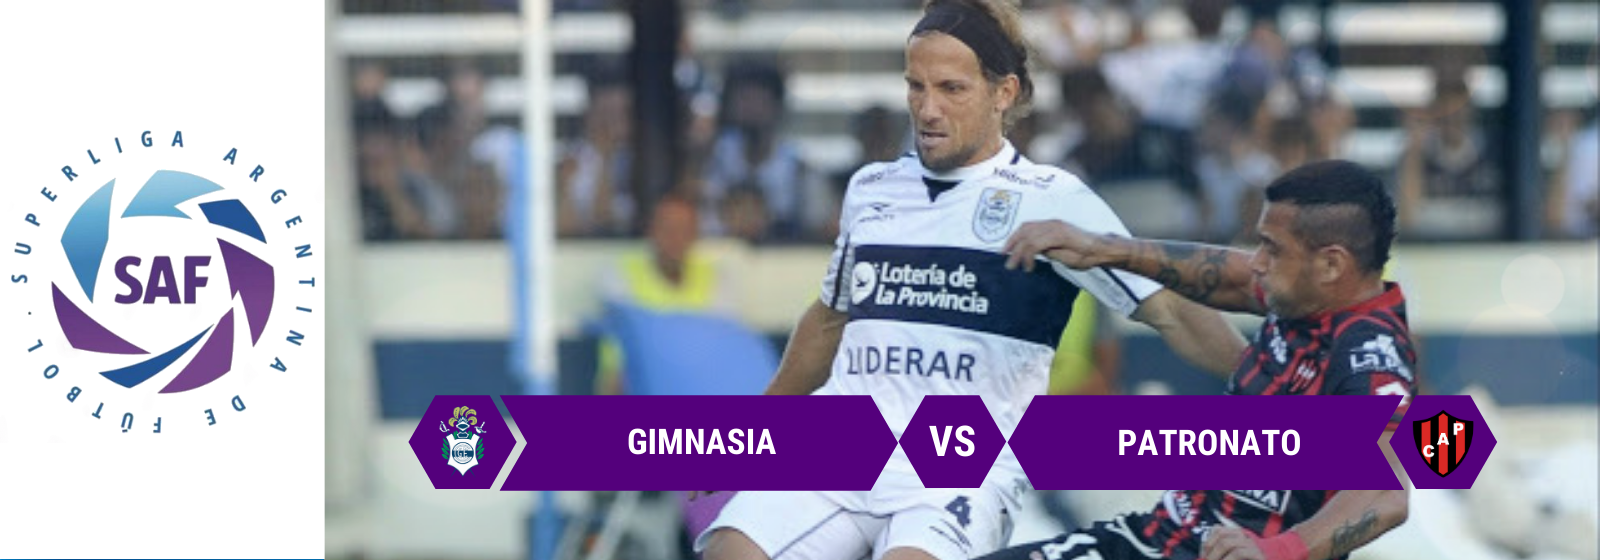 Asianconnect: Gimnasia vs Patronato Odds for February 08, 2020